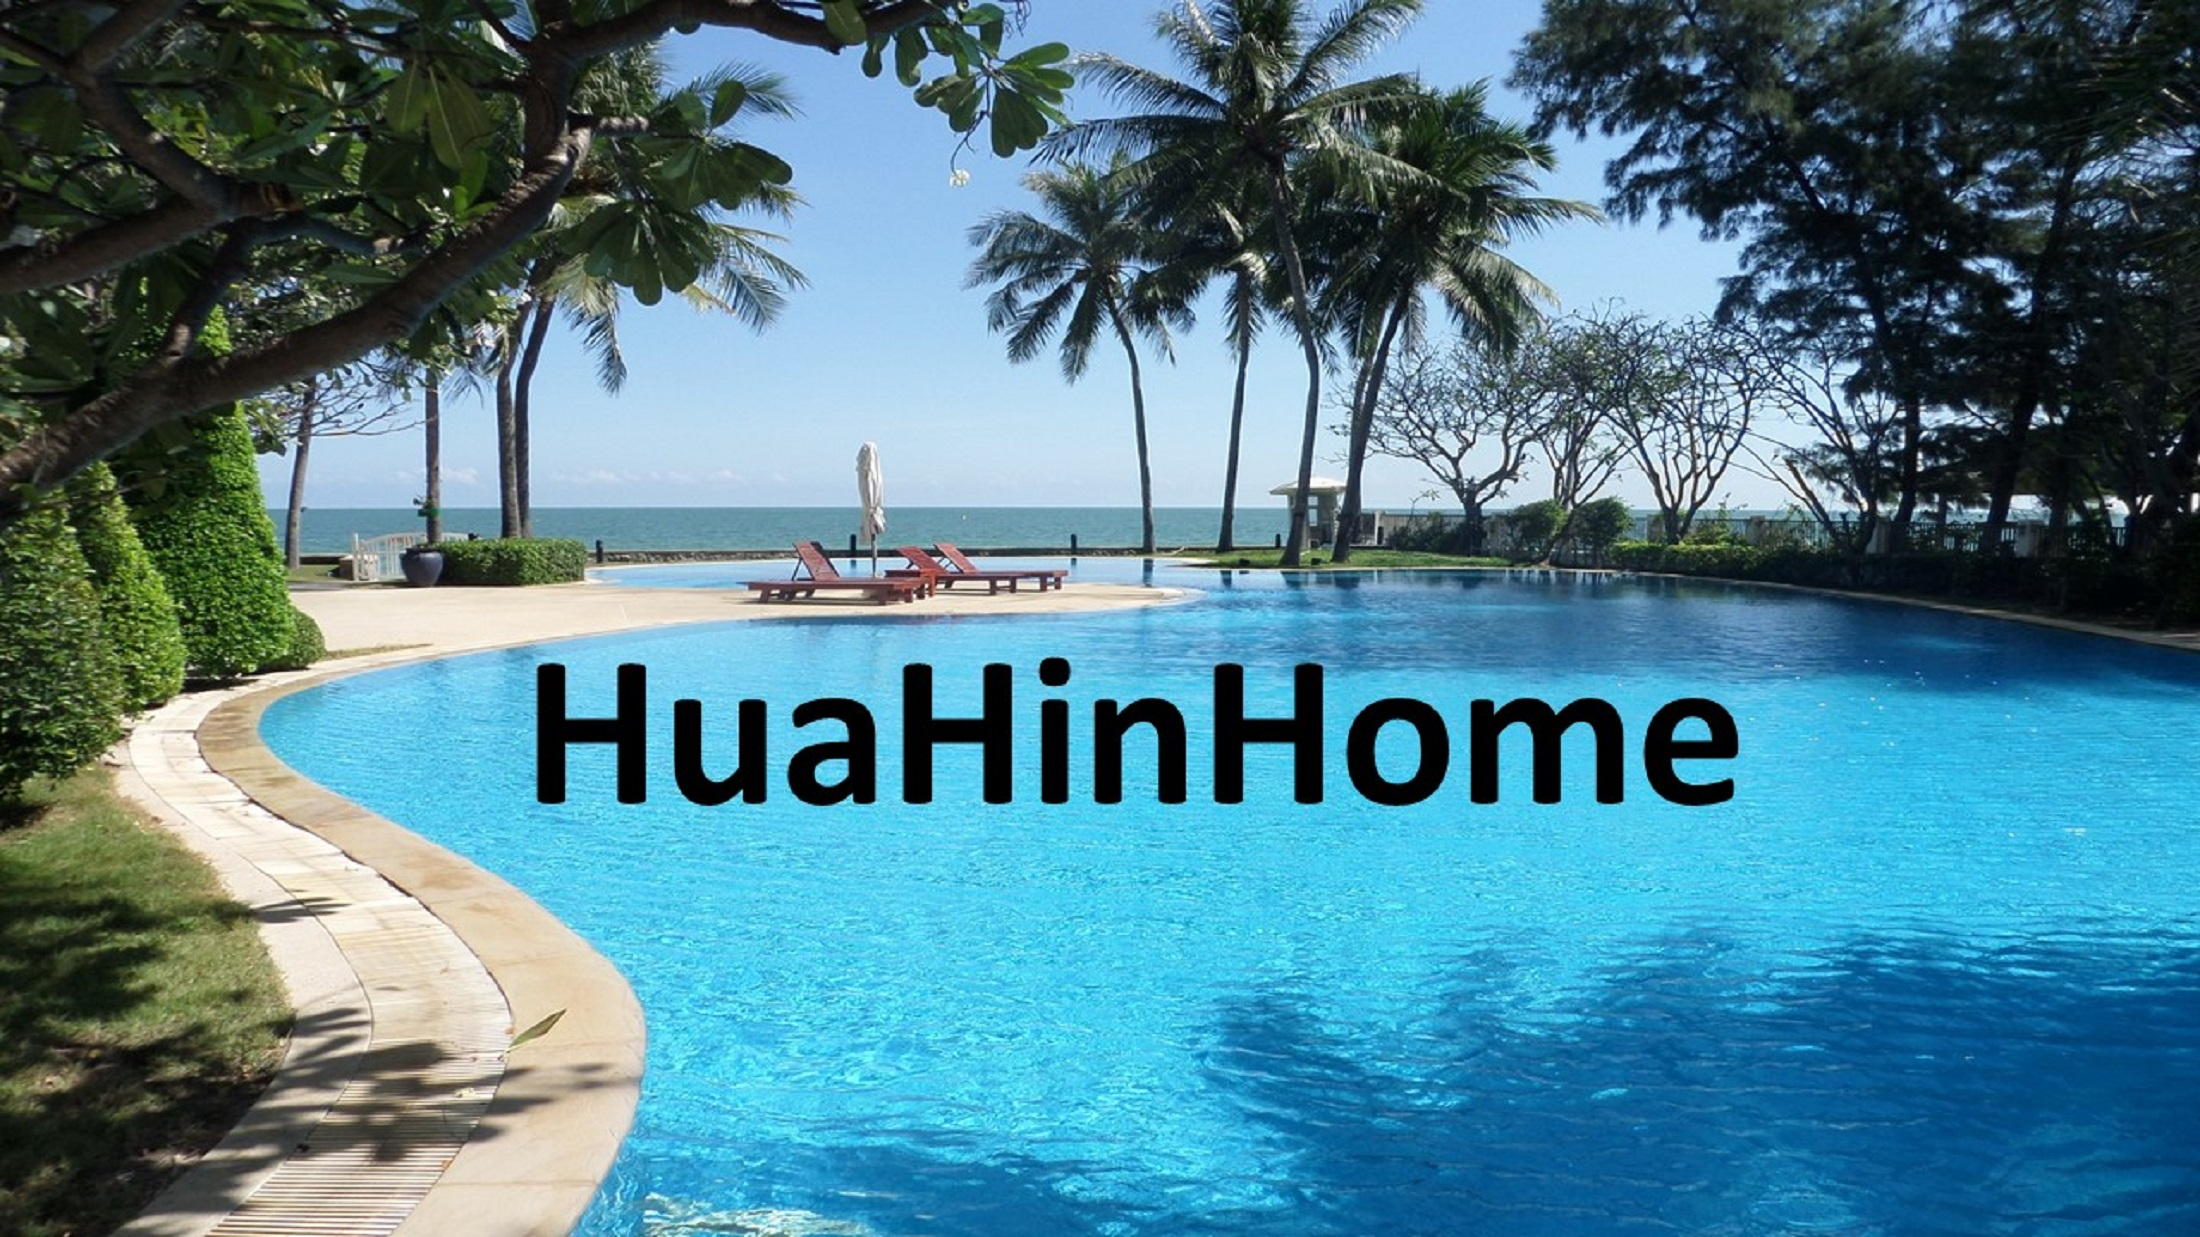 Huahinhome | Huahinhome   Action and motorsport